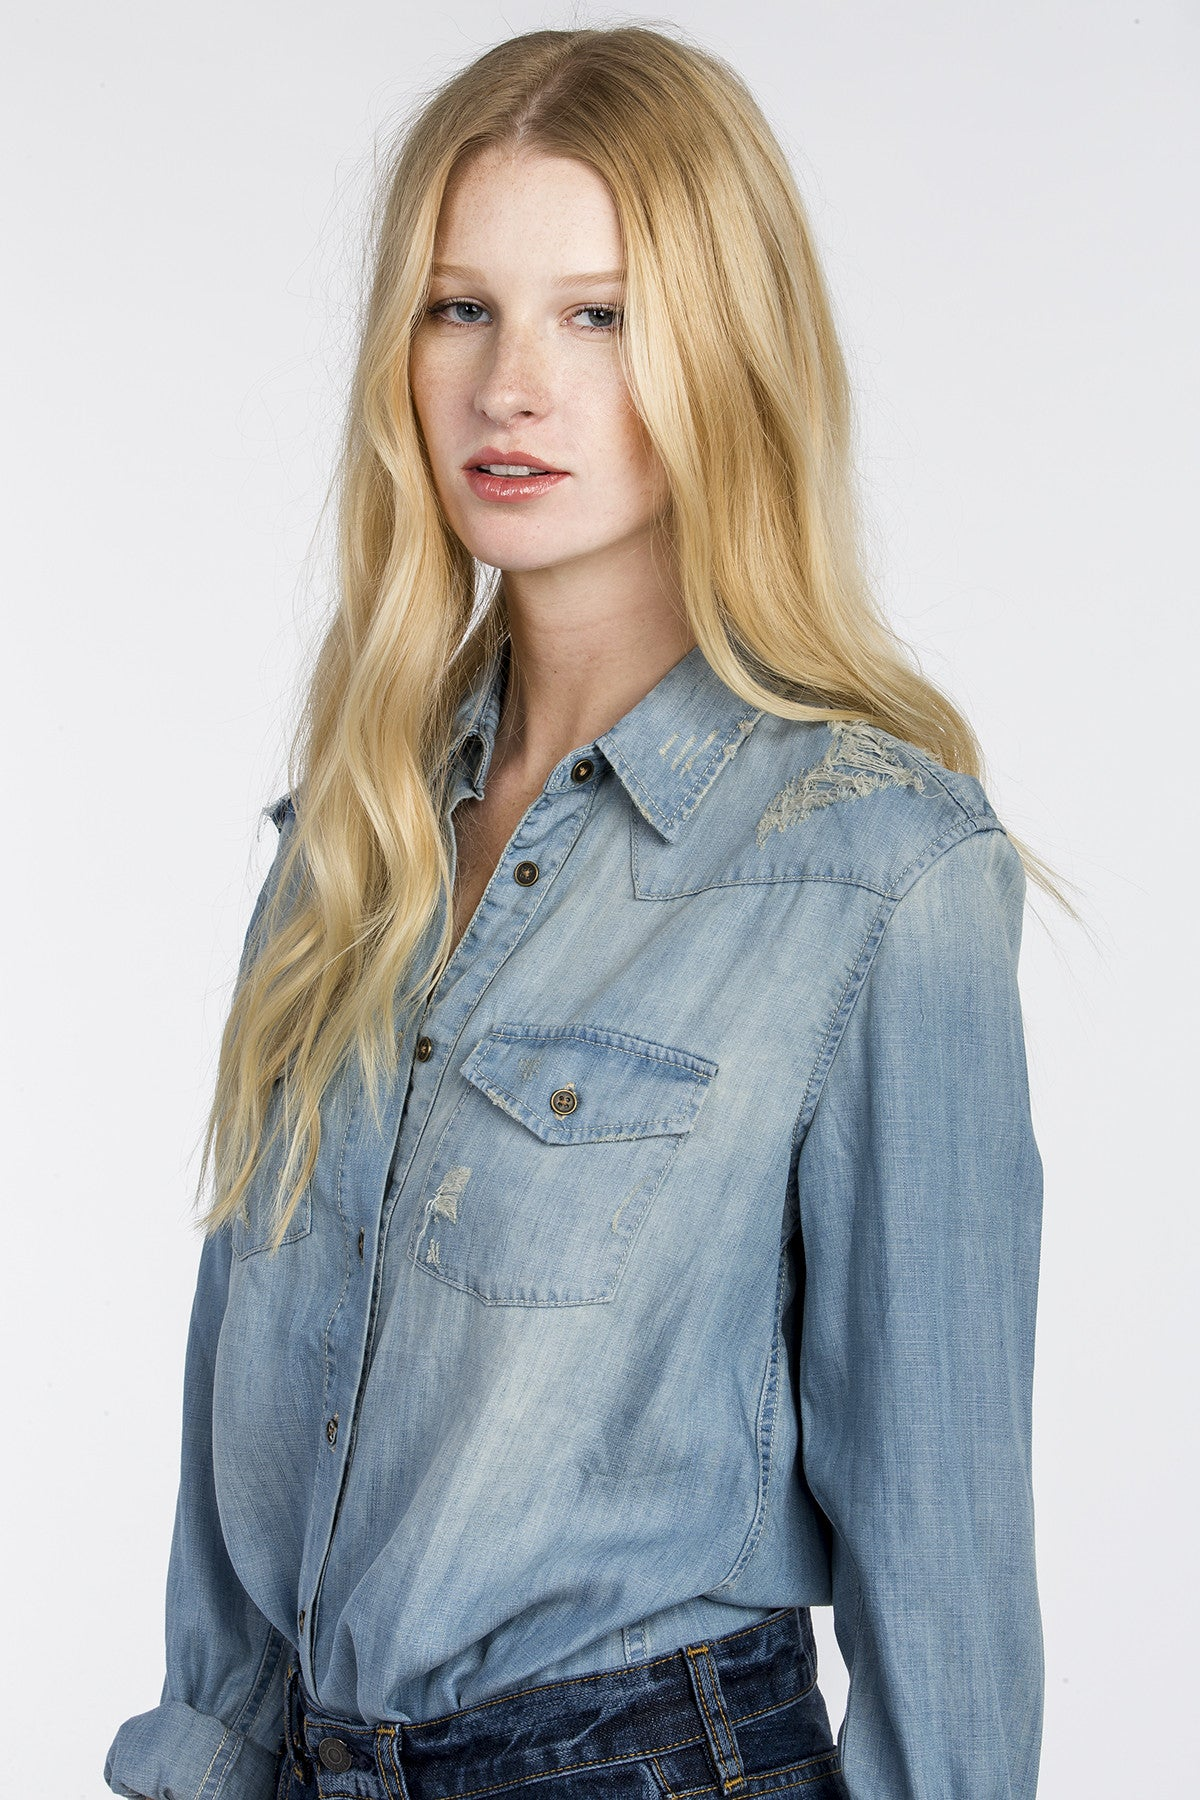 Tried And True Denim Top